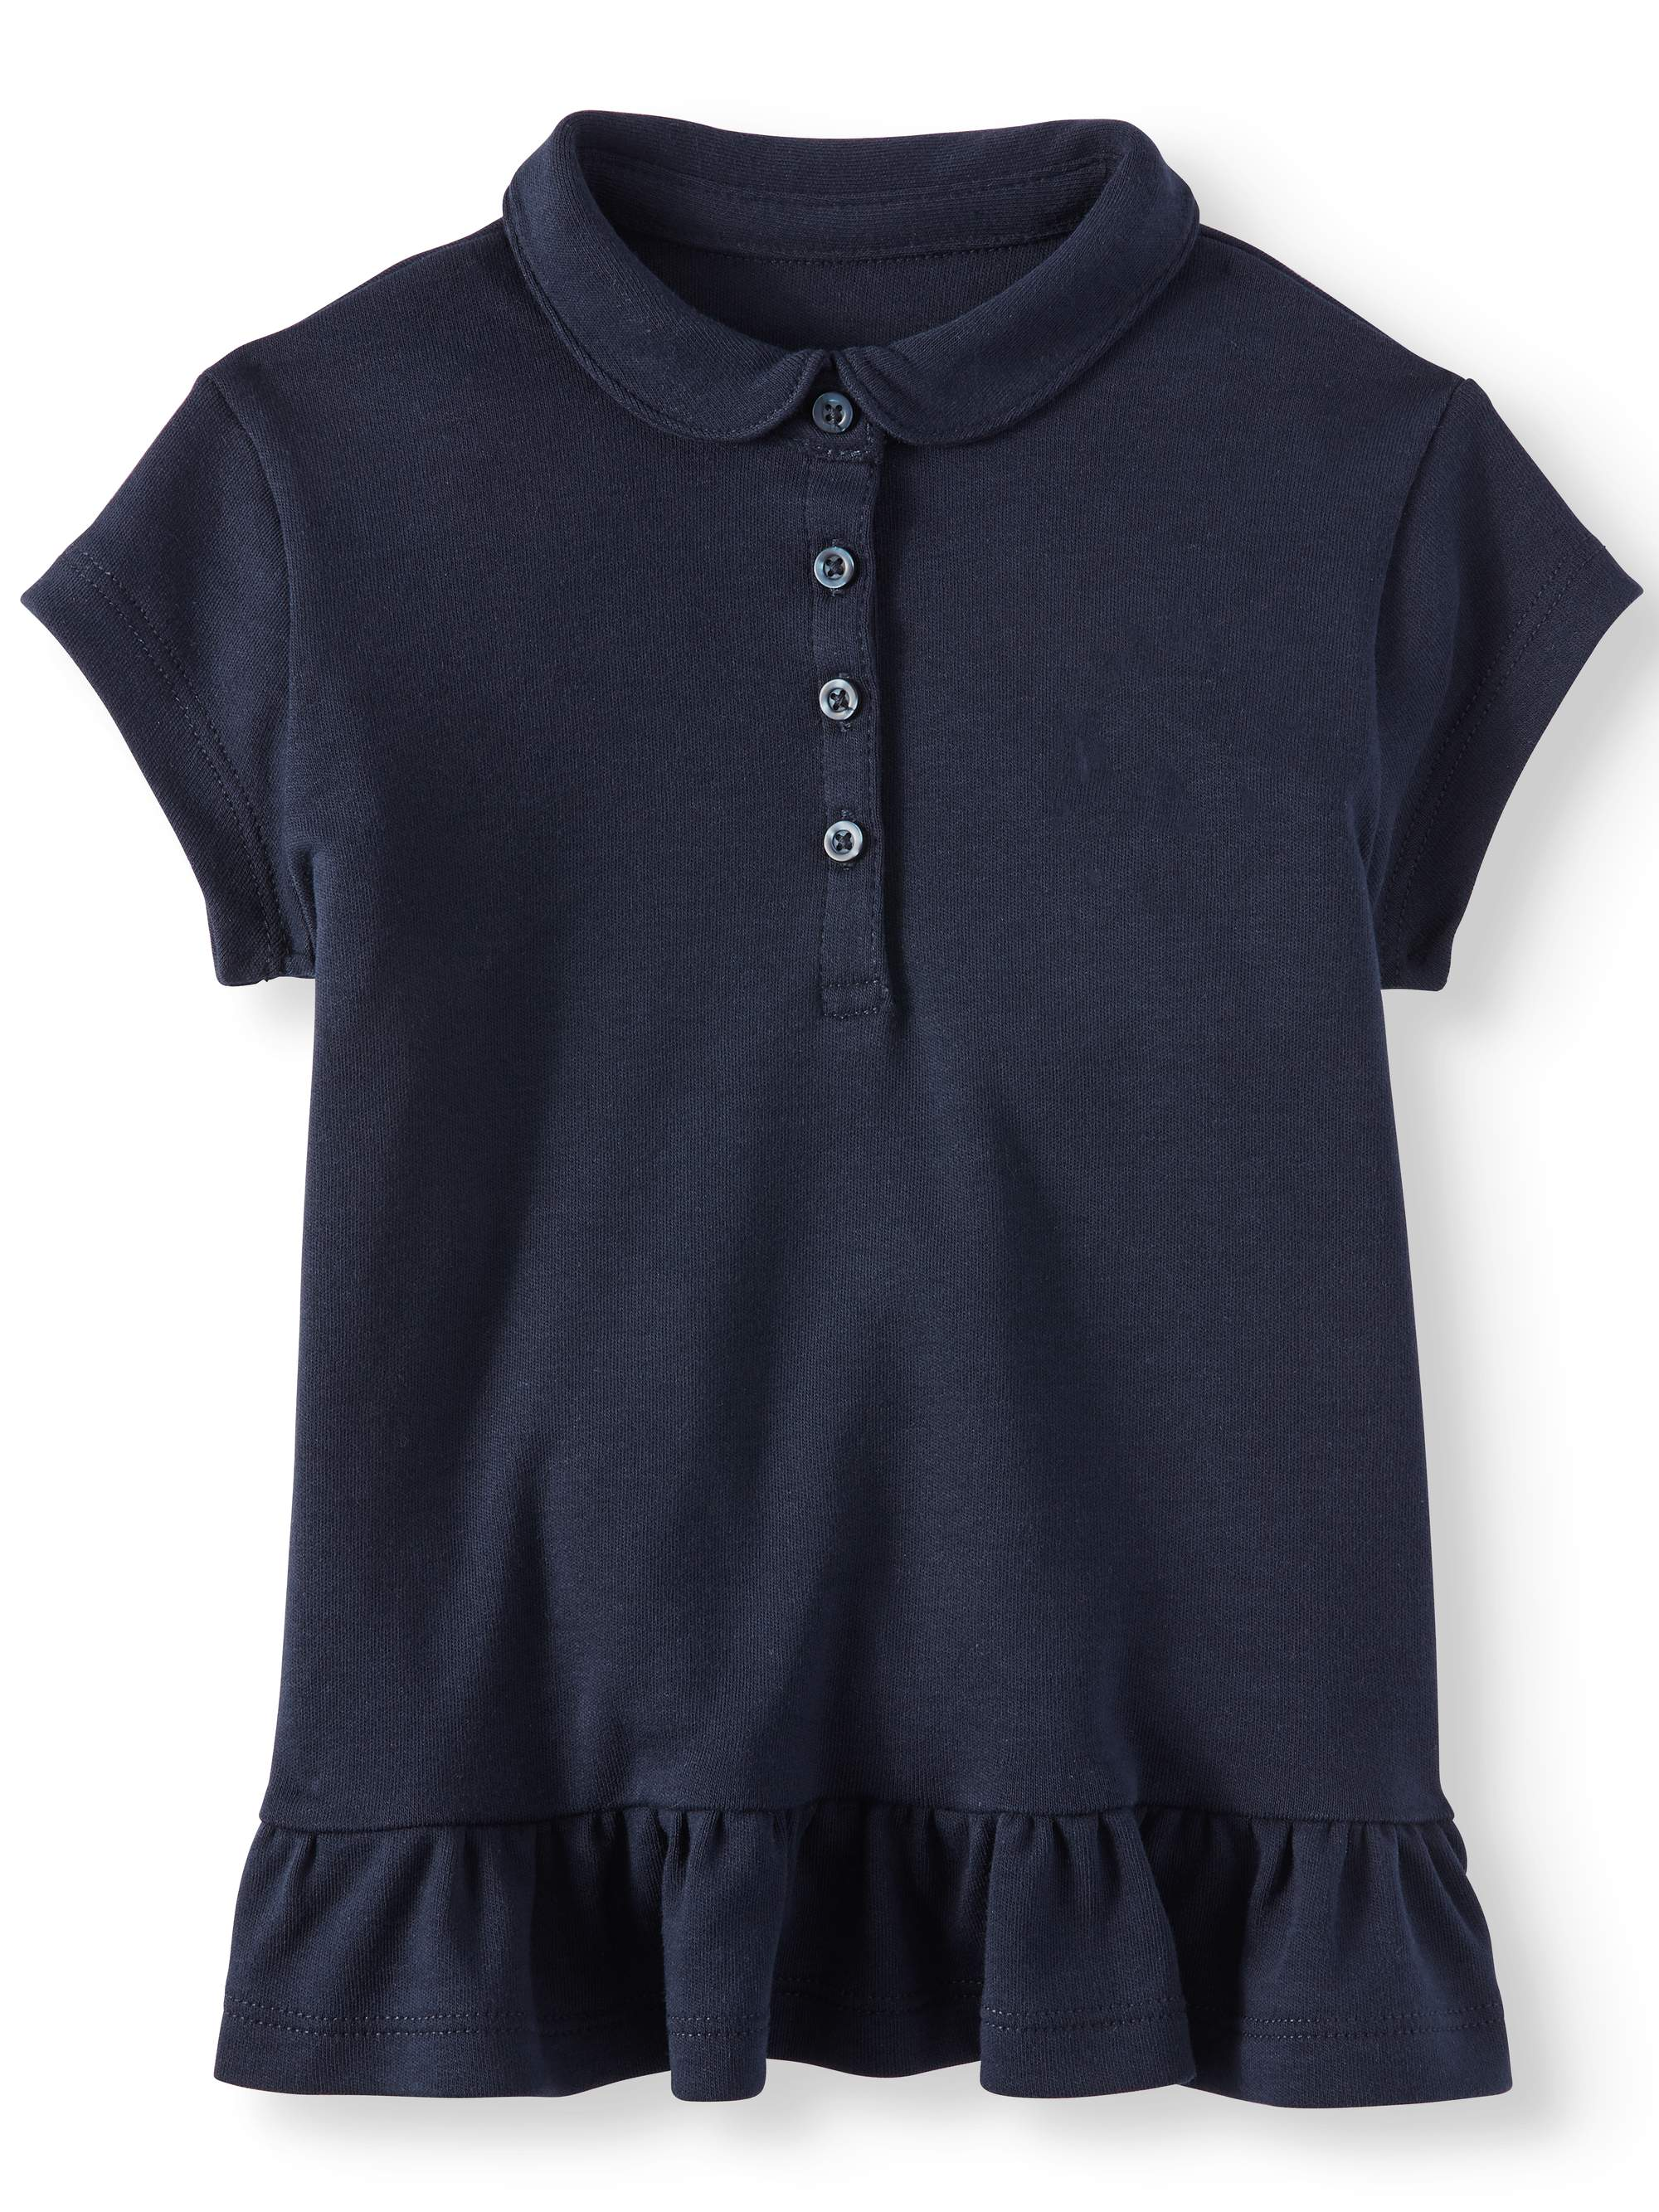 Toddler Girls School Uniform Ruffle Hem Tunic